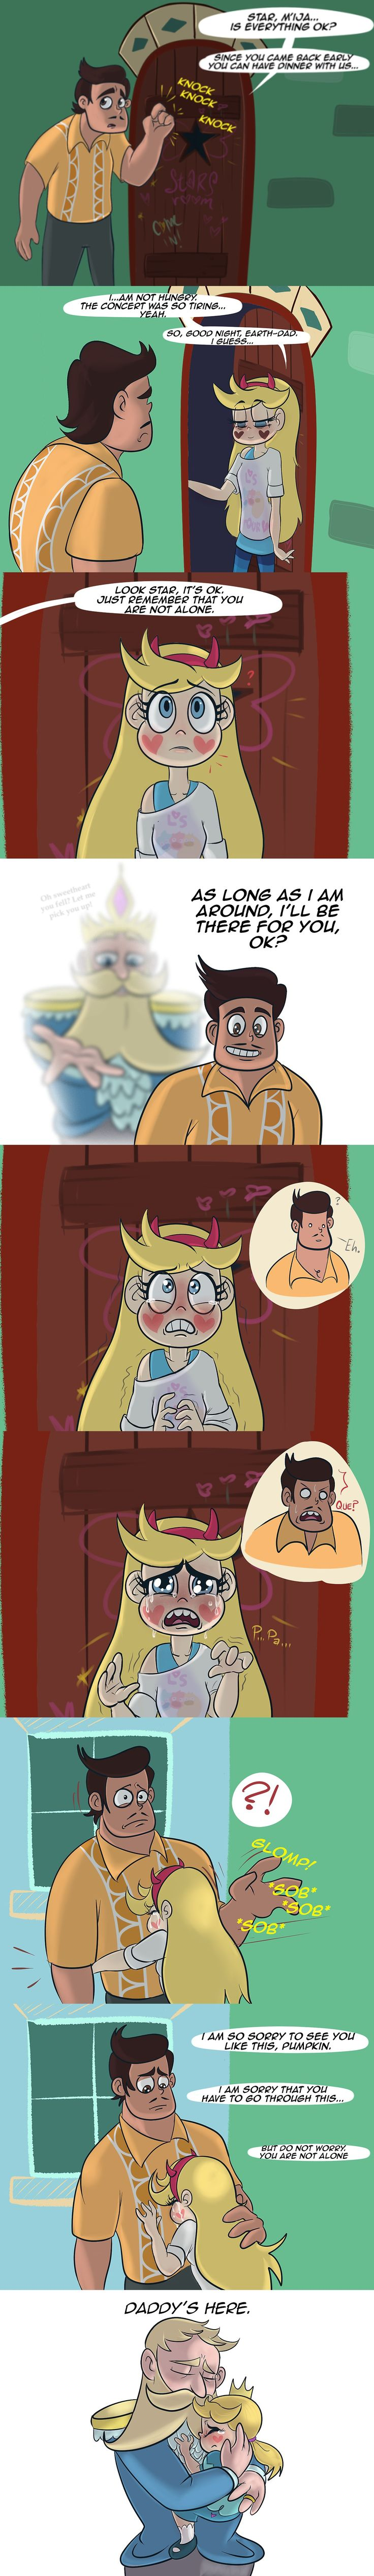 Star has a more positive relationship with her dad than with her mom, I think.